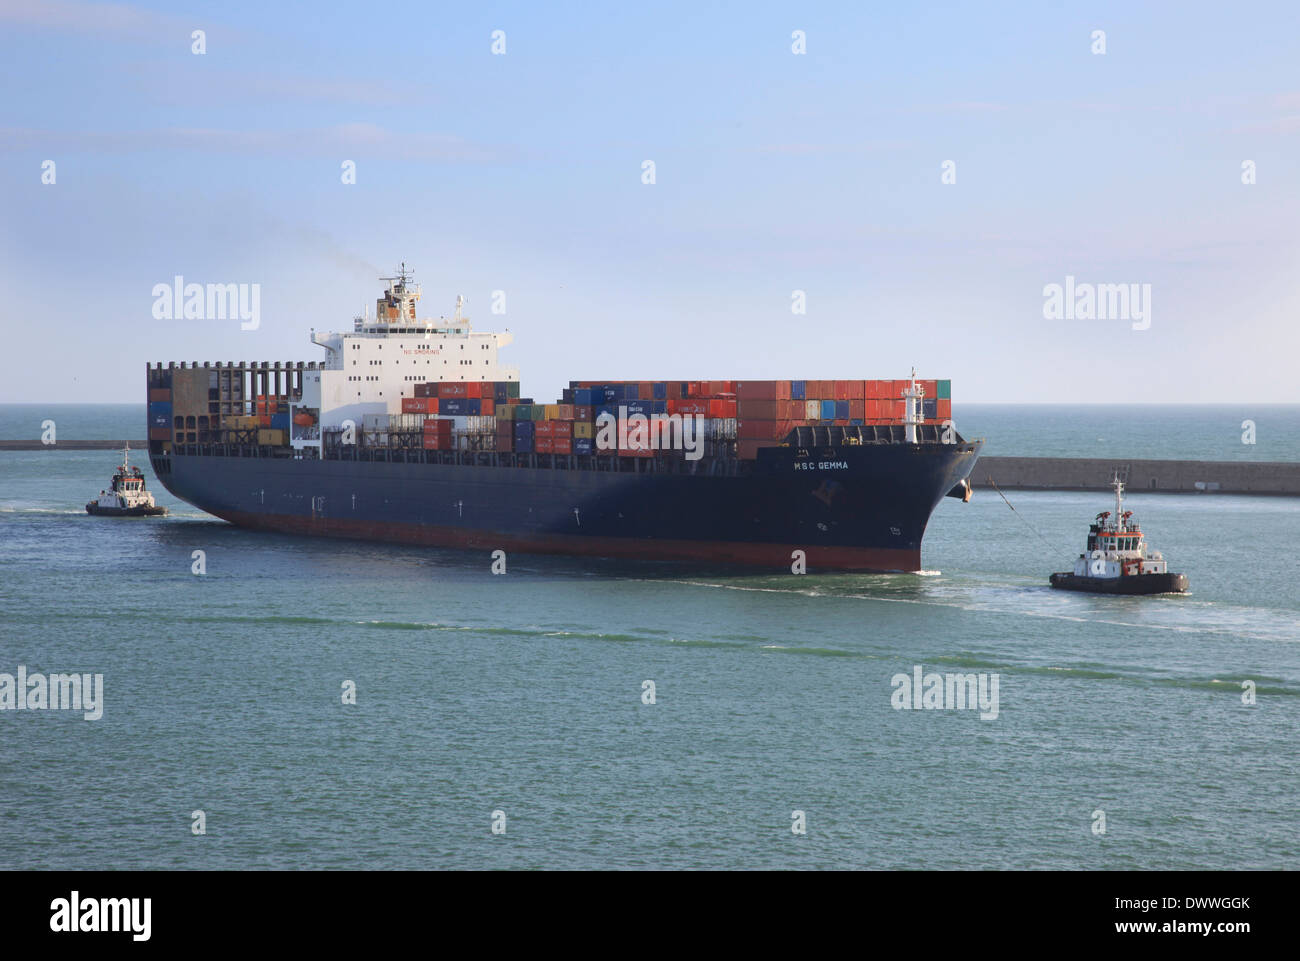 Container ship MSC Gemma arriving Civitavecchia harbor Italy assisted by two tugs - Stock Image